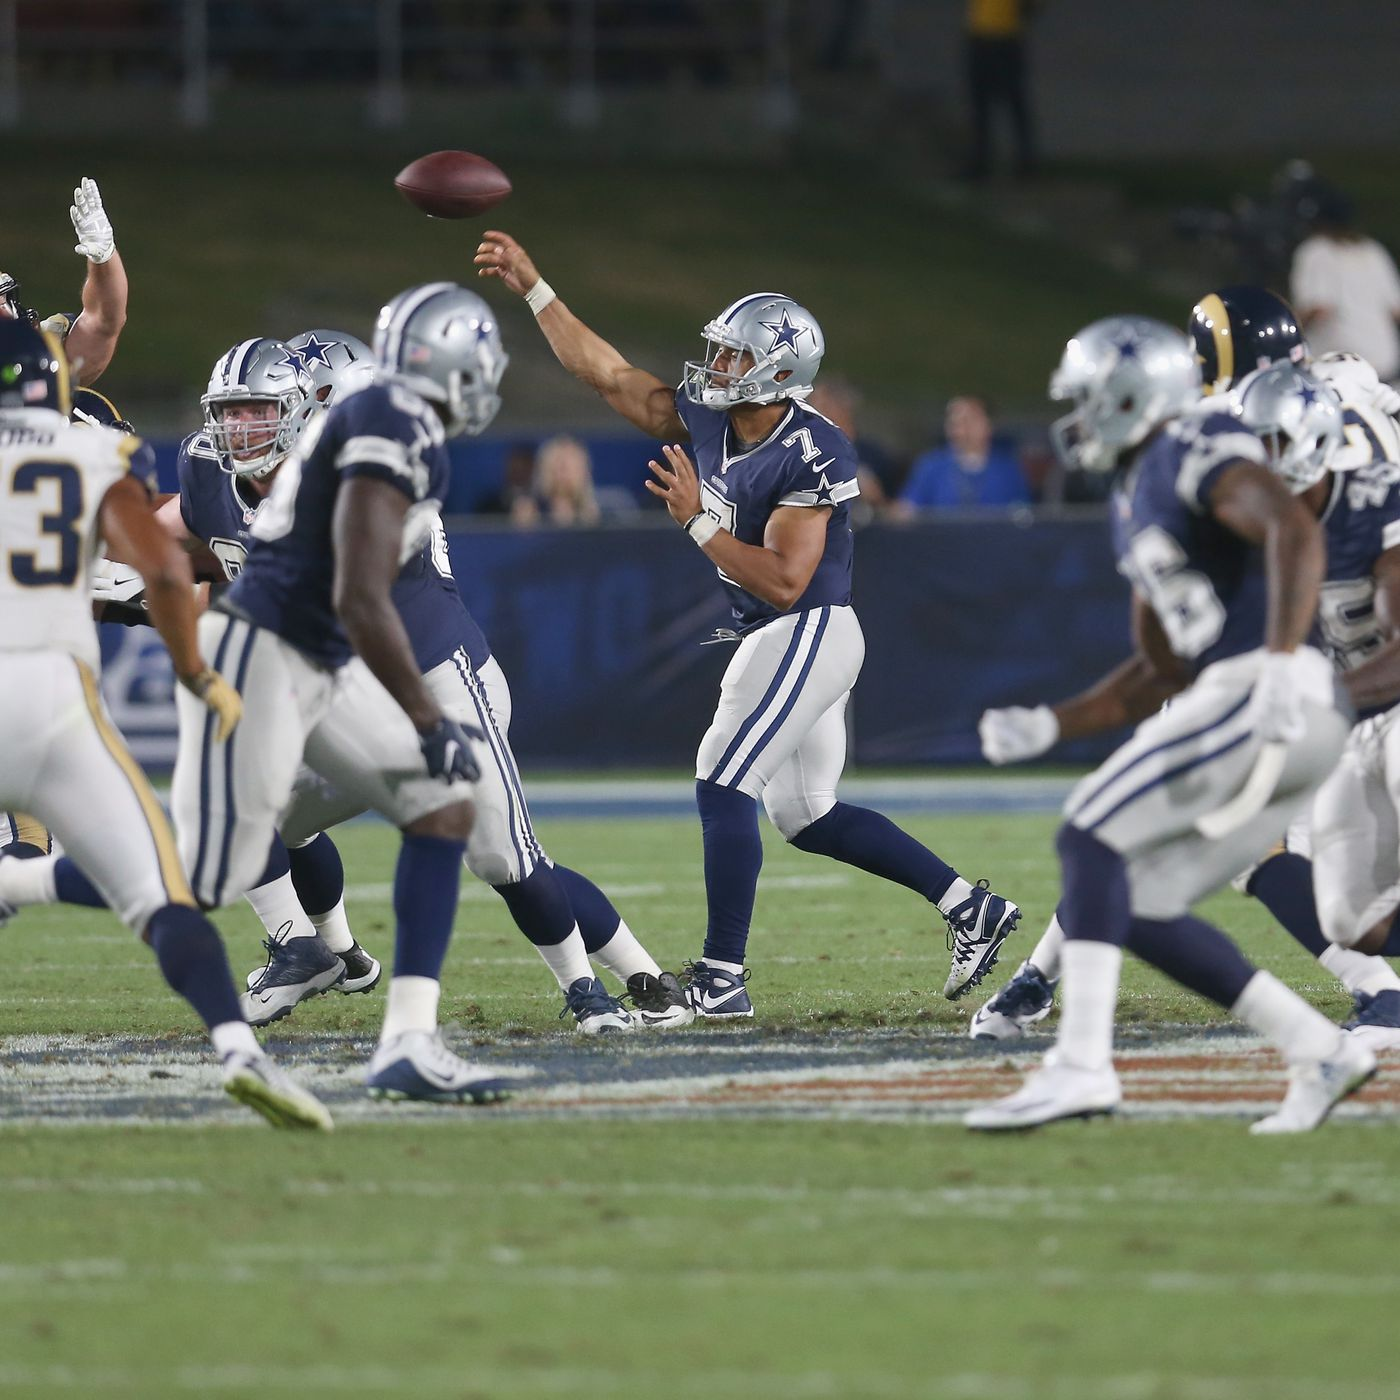 aebb136f Cowboys vs. Rams 2017 live stream: Start time, TV channel, and how ...